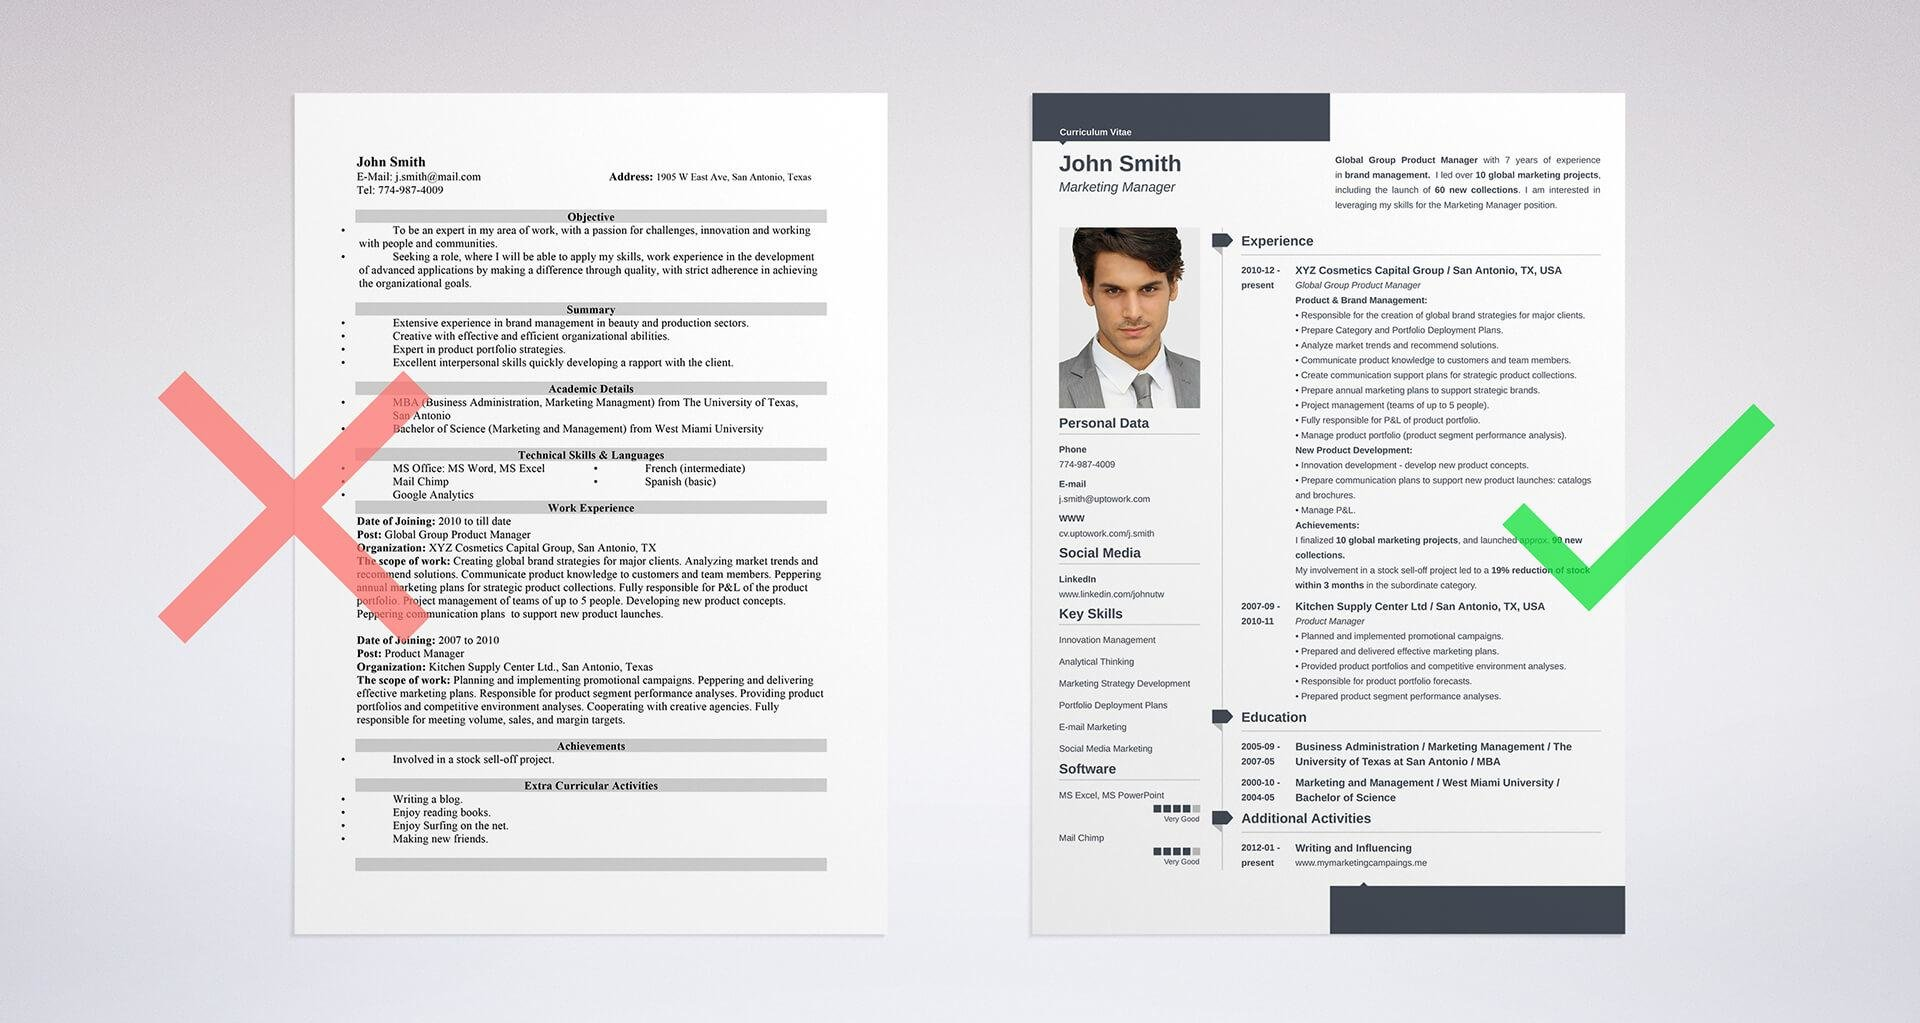 Cv Vs Resume - What Do You Use When You Want To Work Abroad?